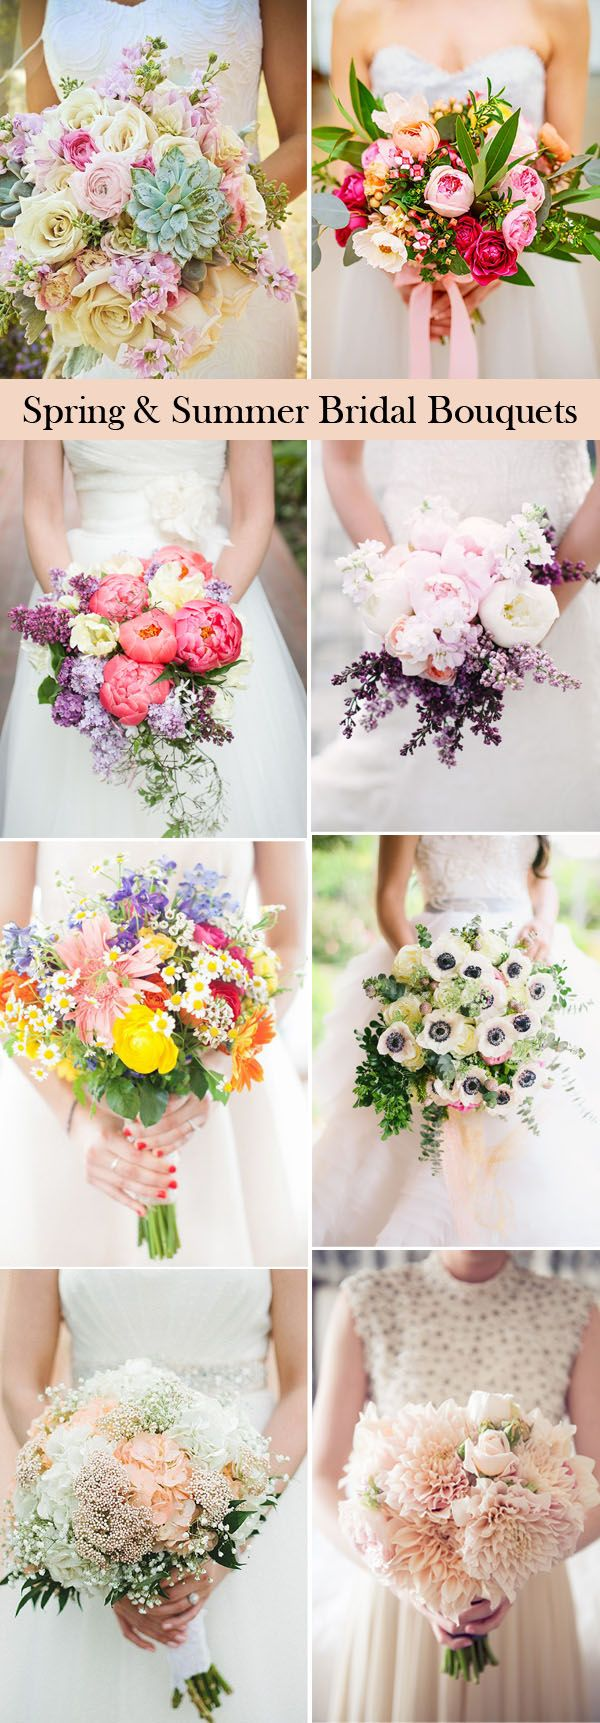 25 swoon worthy wedding bouquets ideas for spring & summer brides